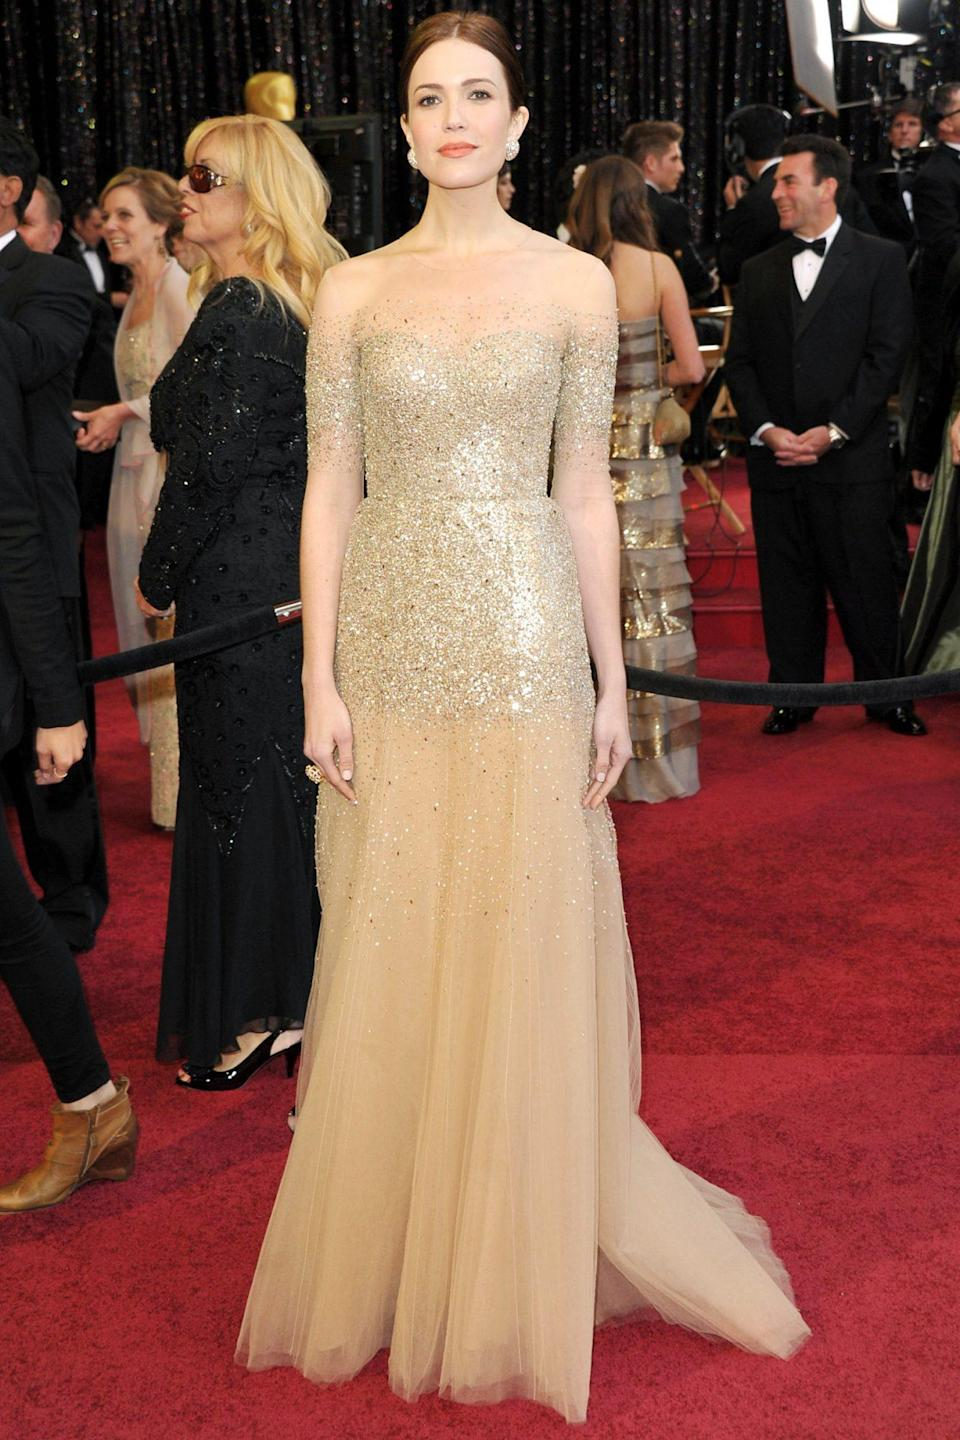 <p>All that glitters is...Mandy Moore's golden gown! The star sparkled on the red carpet in a Monique Lhuillier look fit for a princess. And good thing, because she was there to perform a song from the Disney movie <em>Tangled</em>, which was nominated for Best Original Song.</p>